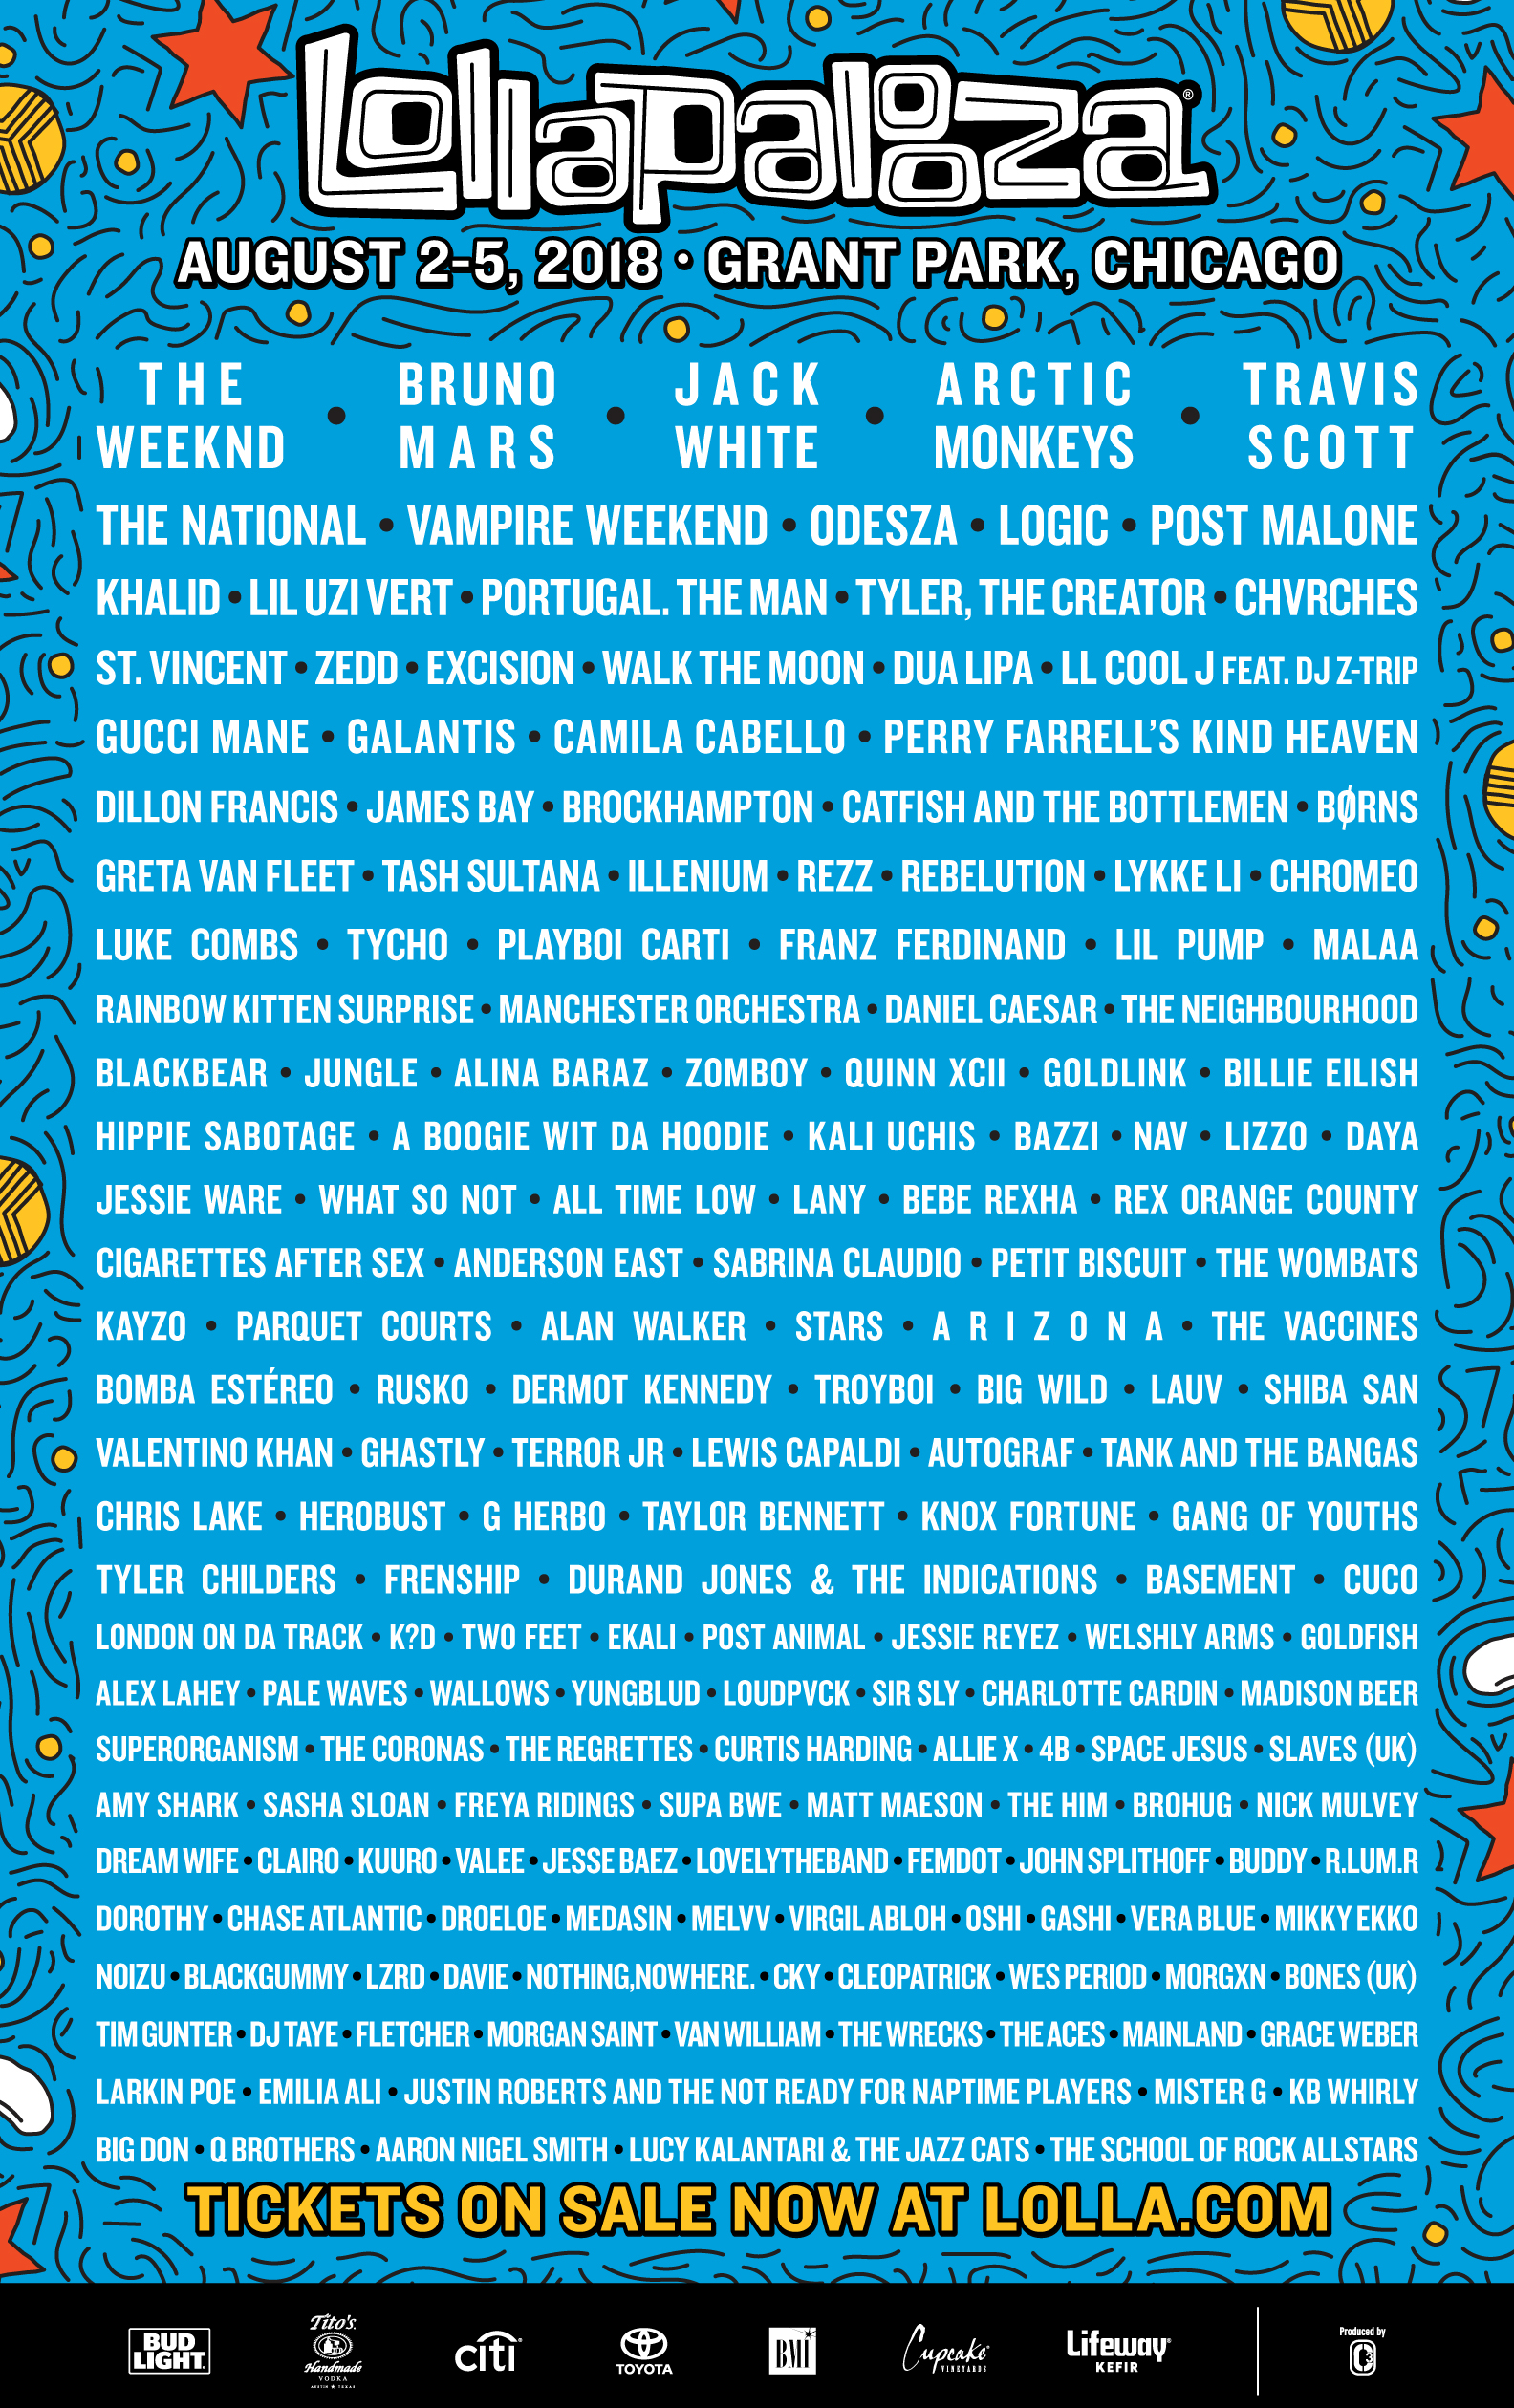 If you're interested in the lineup, which you probably are because there's something there for everyone… purchase tickets here: https://www.lollapalooza.com/tickets/